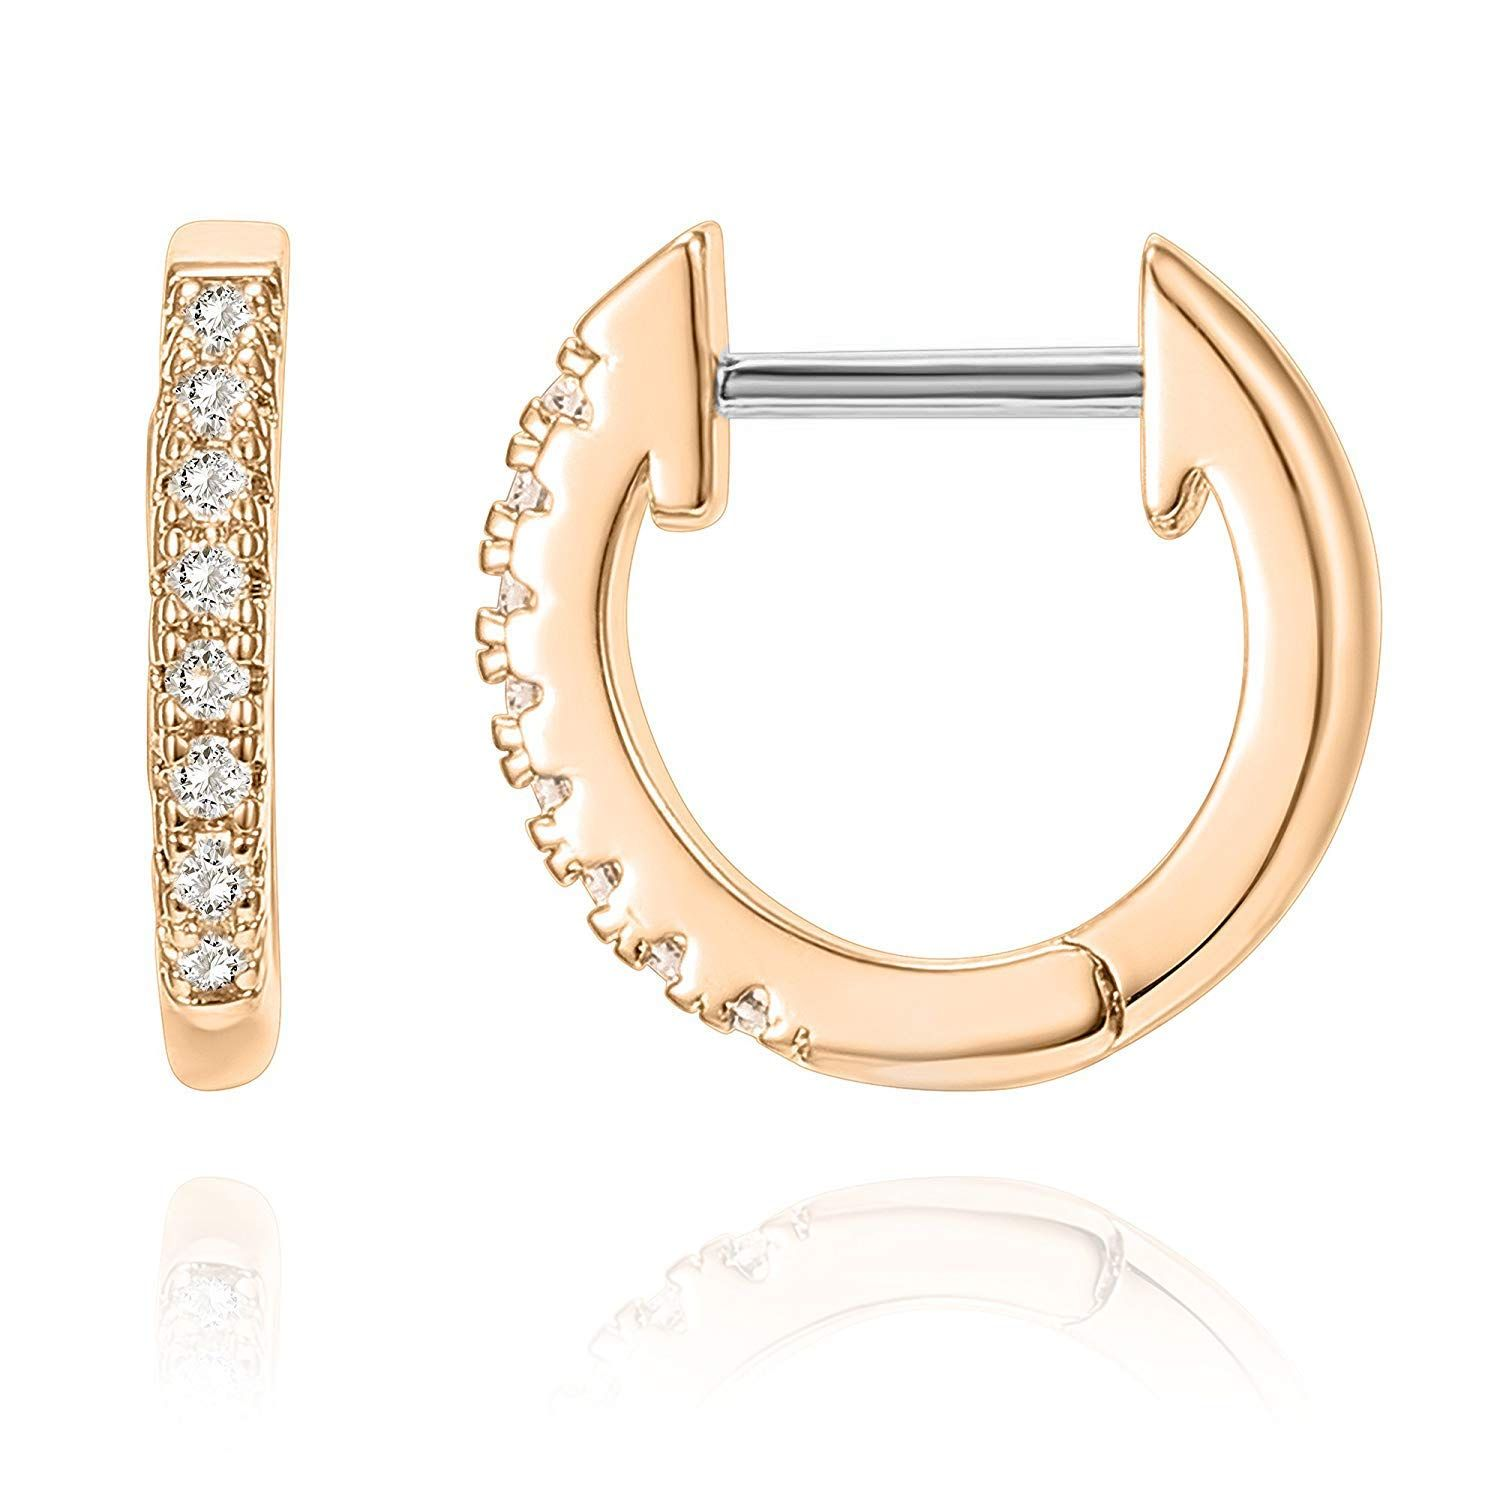 d645c2634 PAVOI 14K Gold Plated Cubic Zirconia Cuff Earrings Huggie Stud earrings of  gold   earrings studs   earrings holder   earrings for women   earrings  rose gold ...